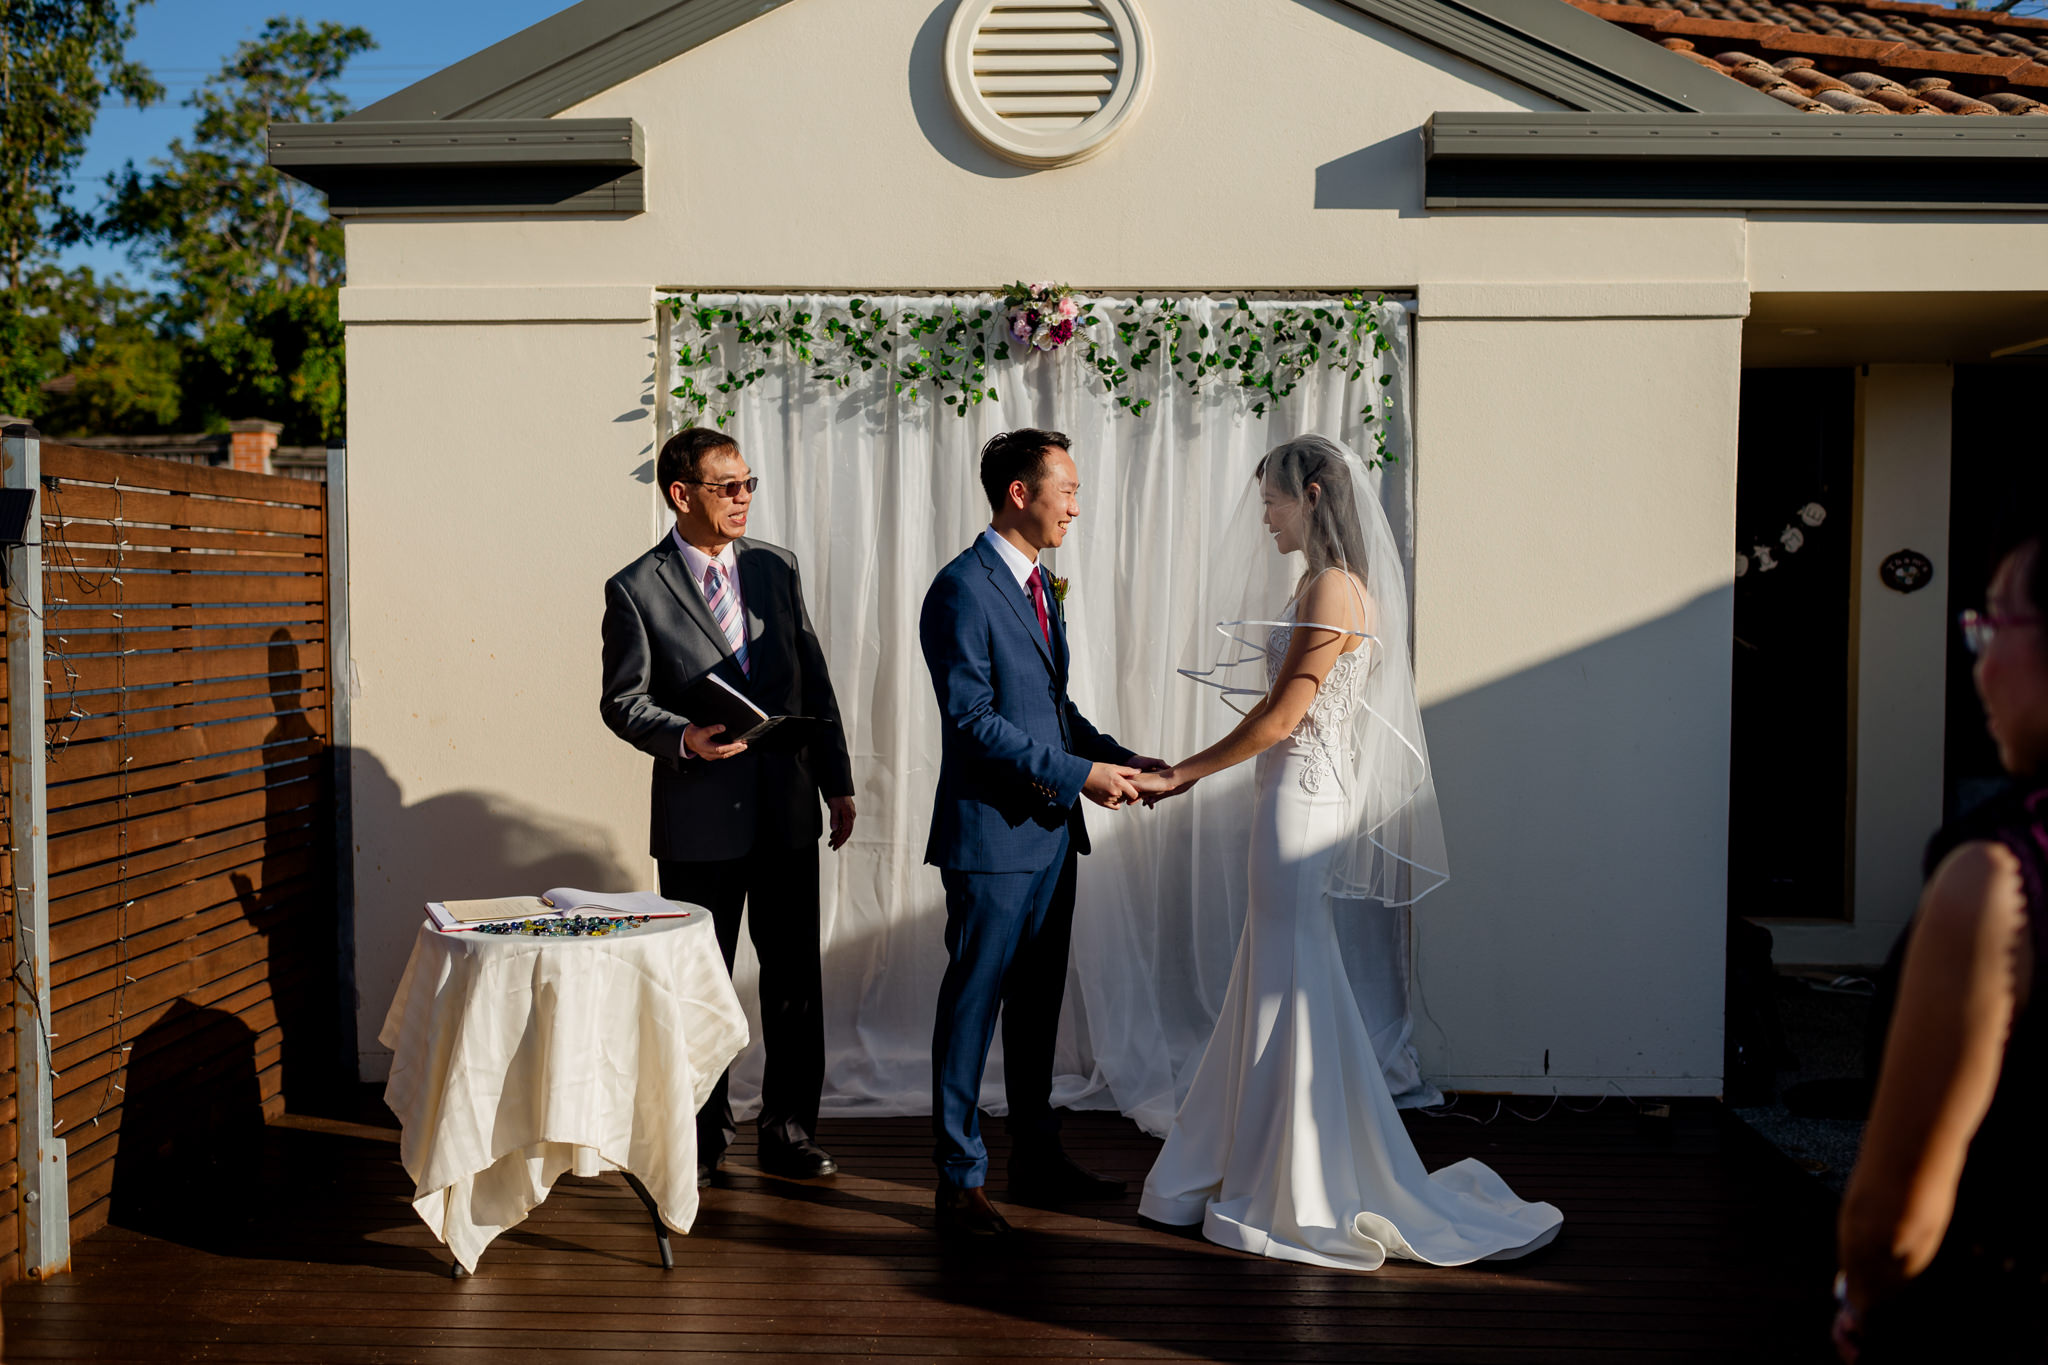 A bride and groom hold hands next to a pastor in front of a home